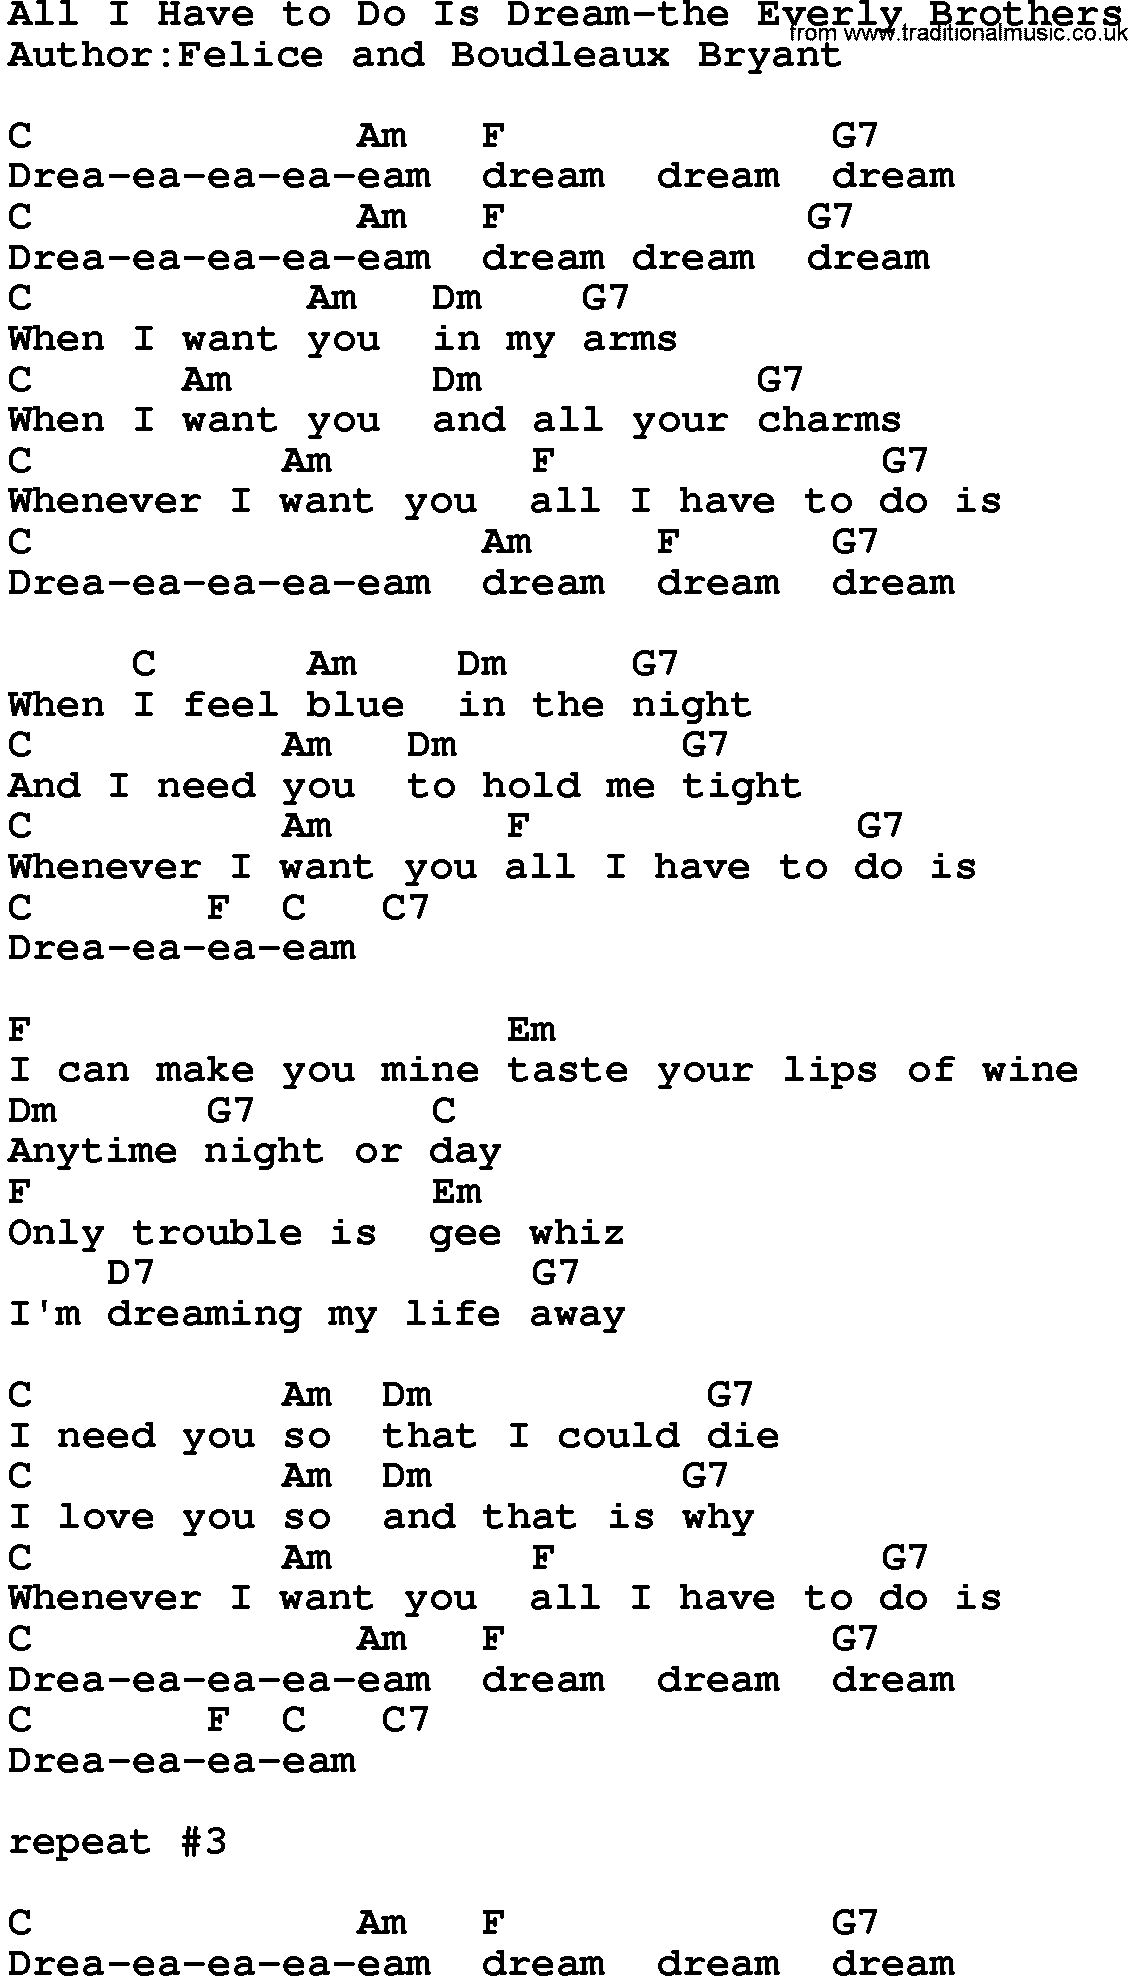 All i have to do is dream everly brothers quotes pinterest country musicall i have to do is dream the everly brothers lyrics and chords hexwebz Image collections